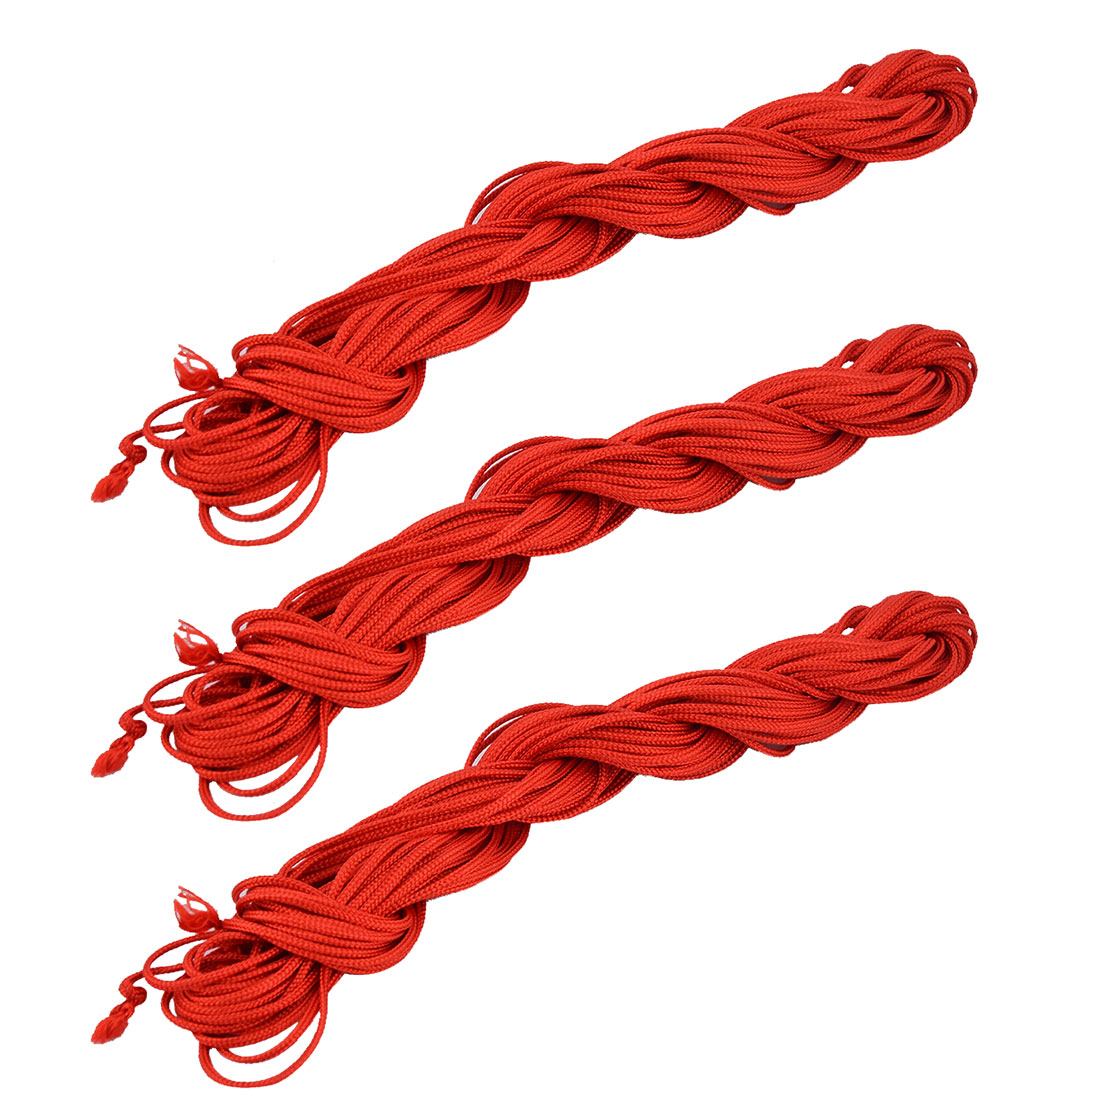 Nylon Handmade Craft Chinese Knot Necklace Cord String Rope Red 16 Yards 3pcs